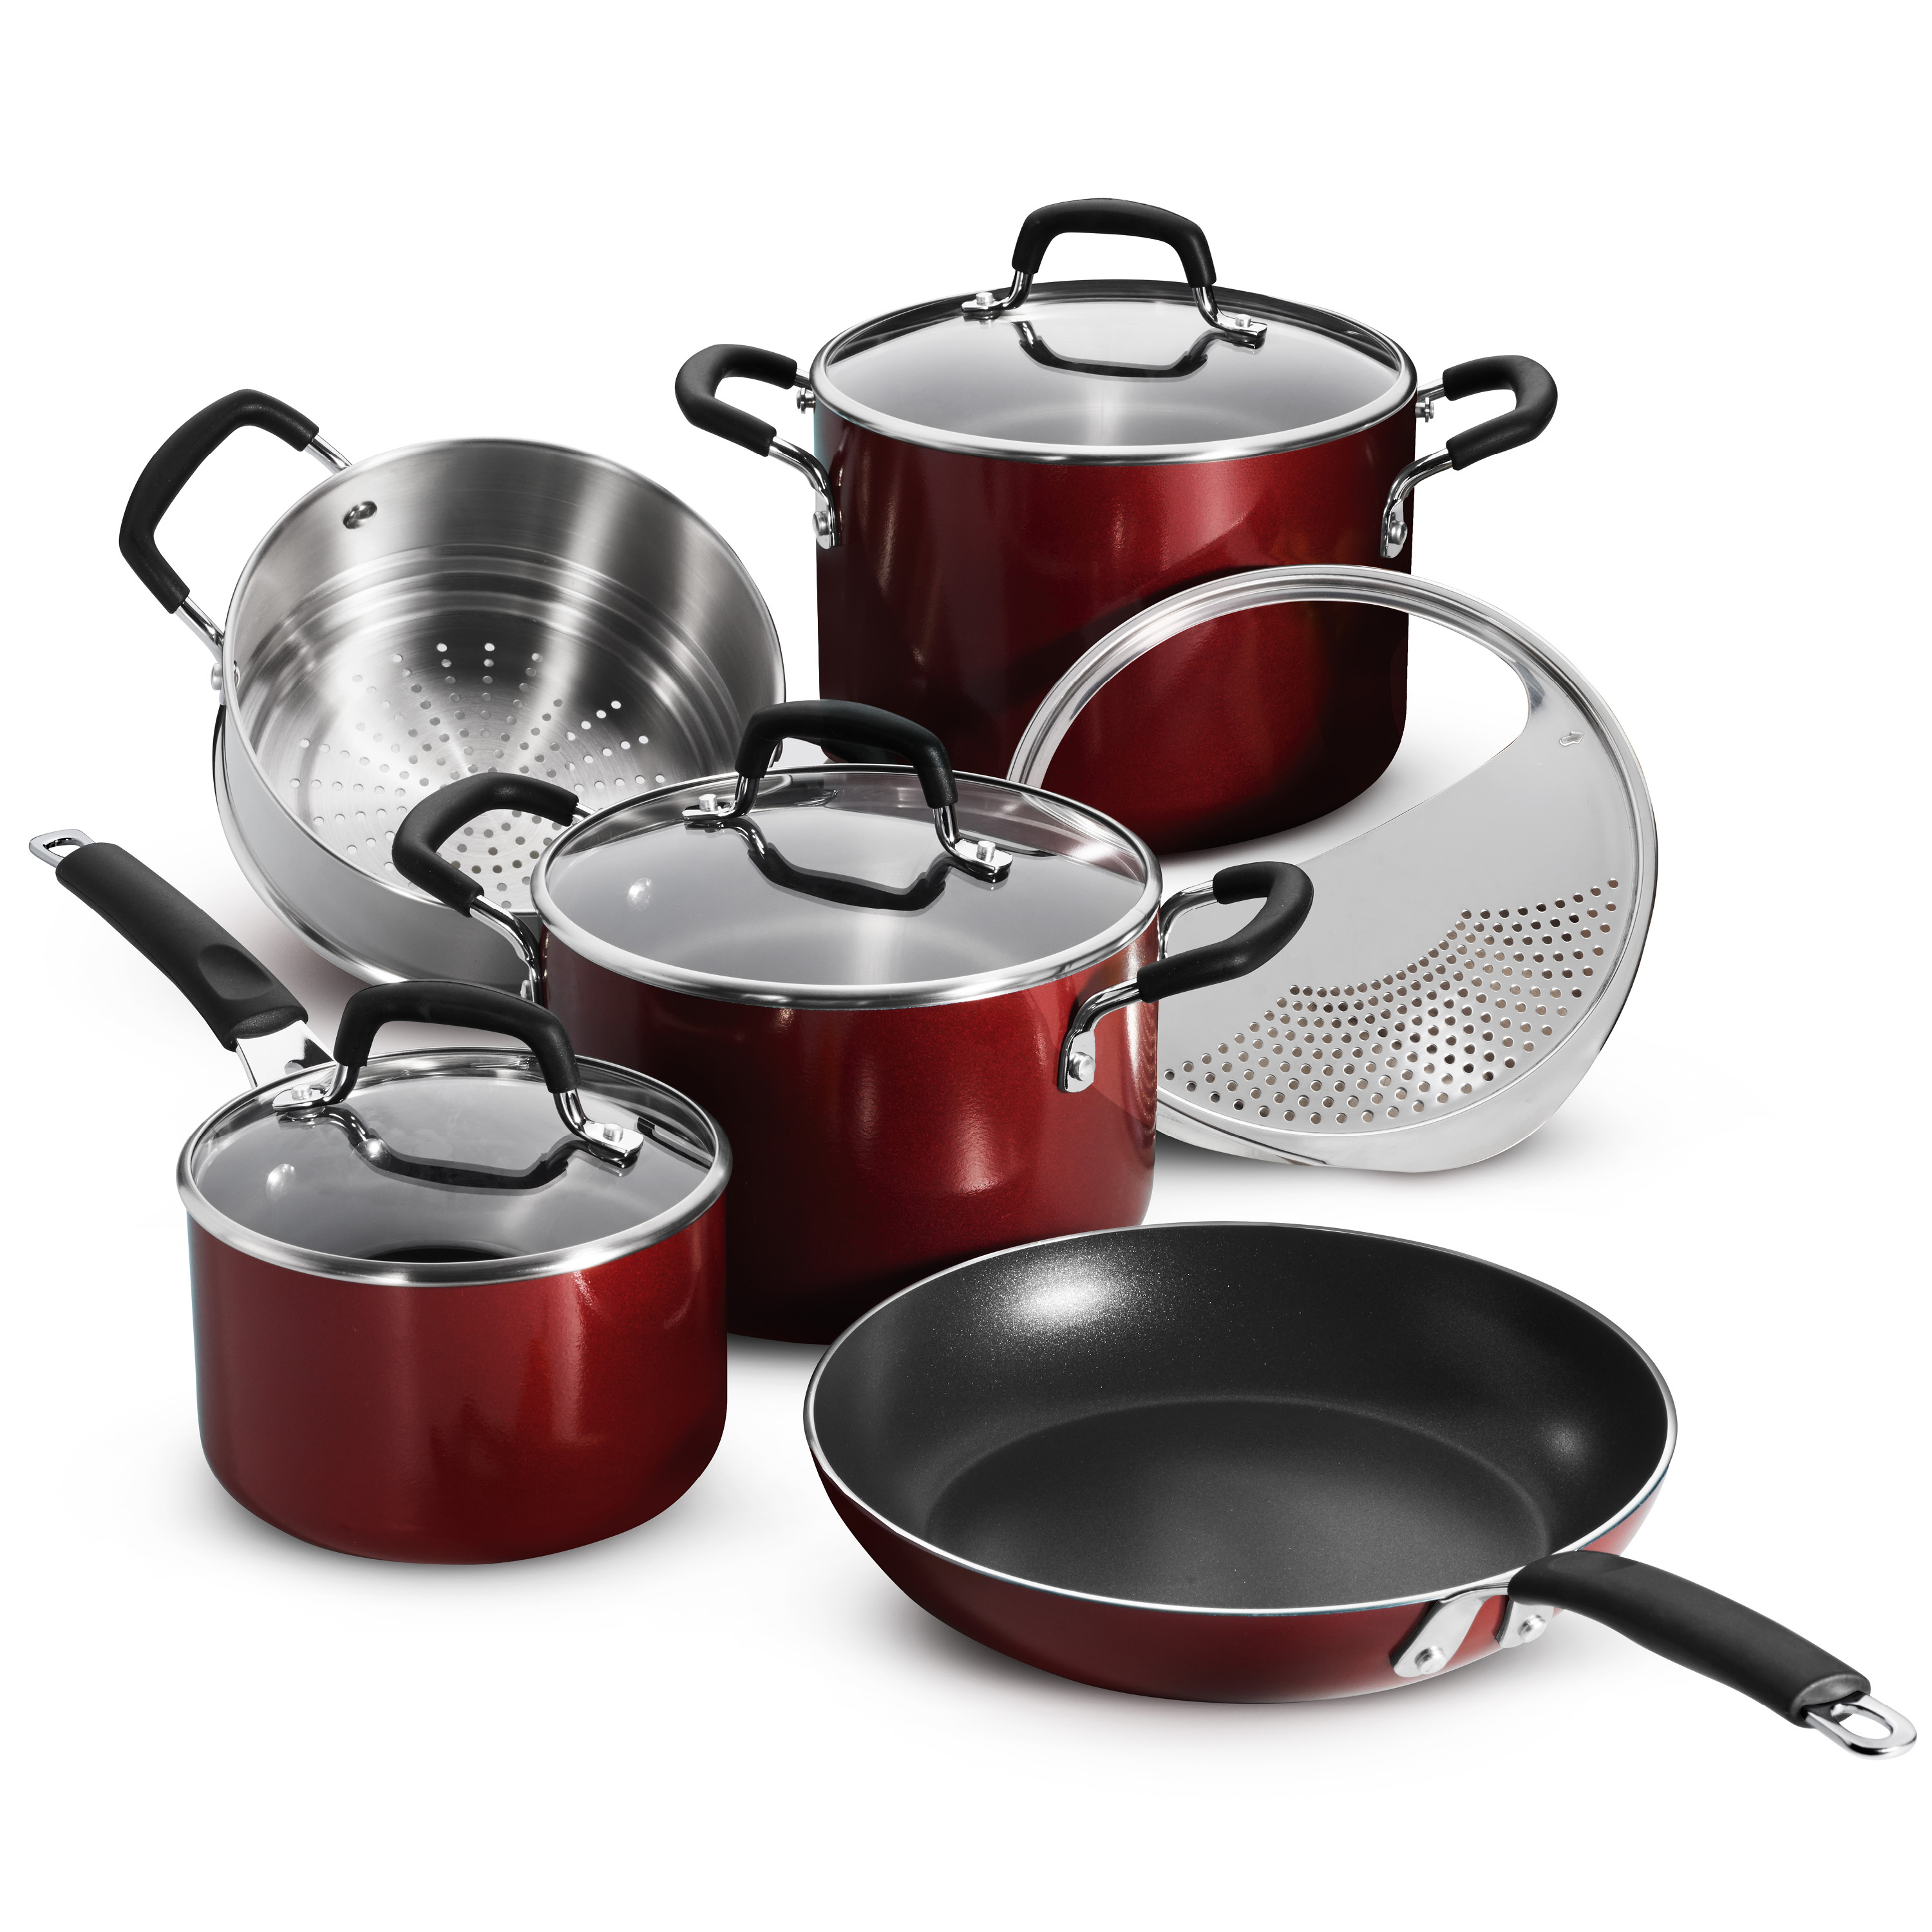 Tramontina 9 Pc Porcelain Enamel Nonstick Cookware Set - Red Rhubarb